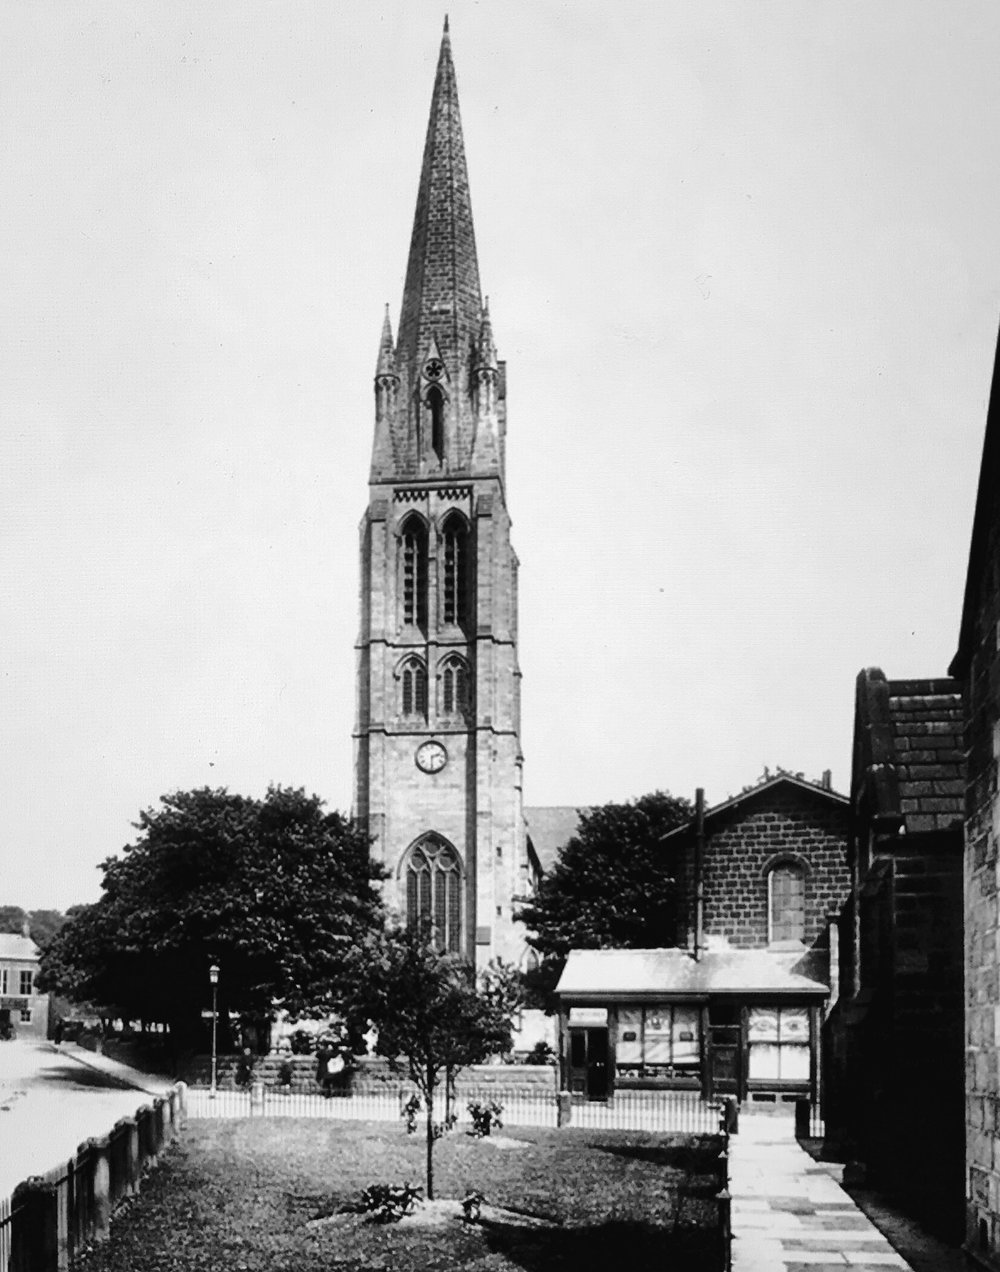 St Michael's Church and Green